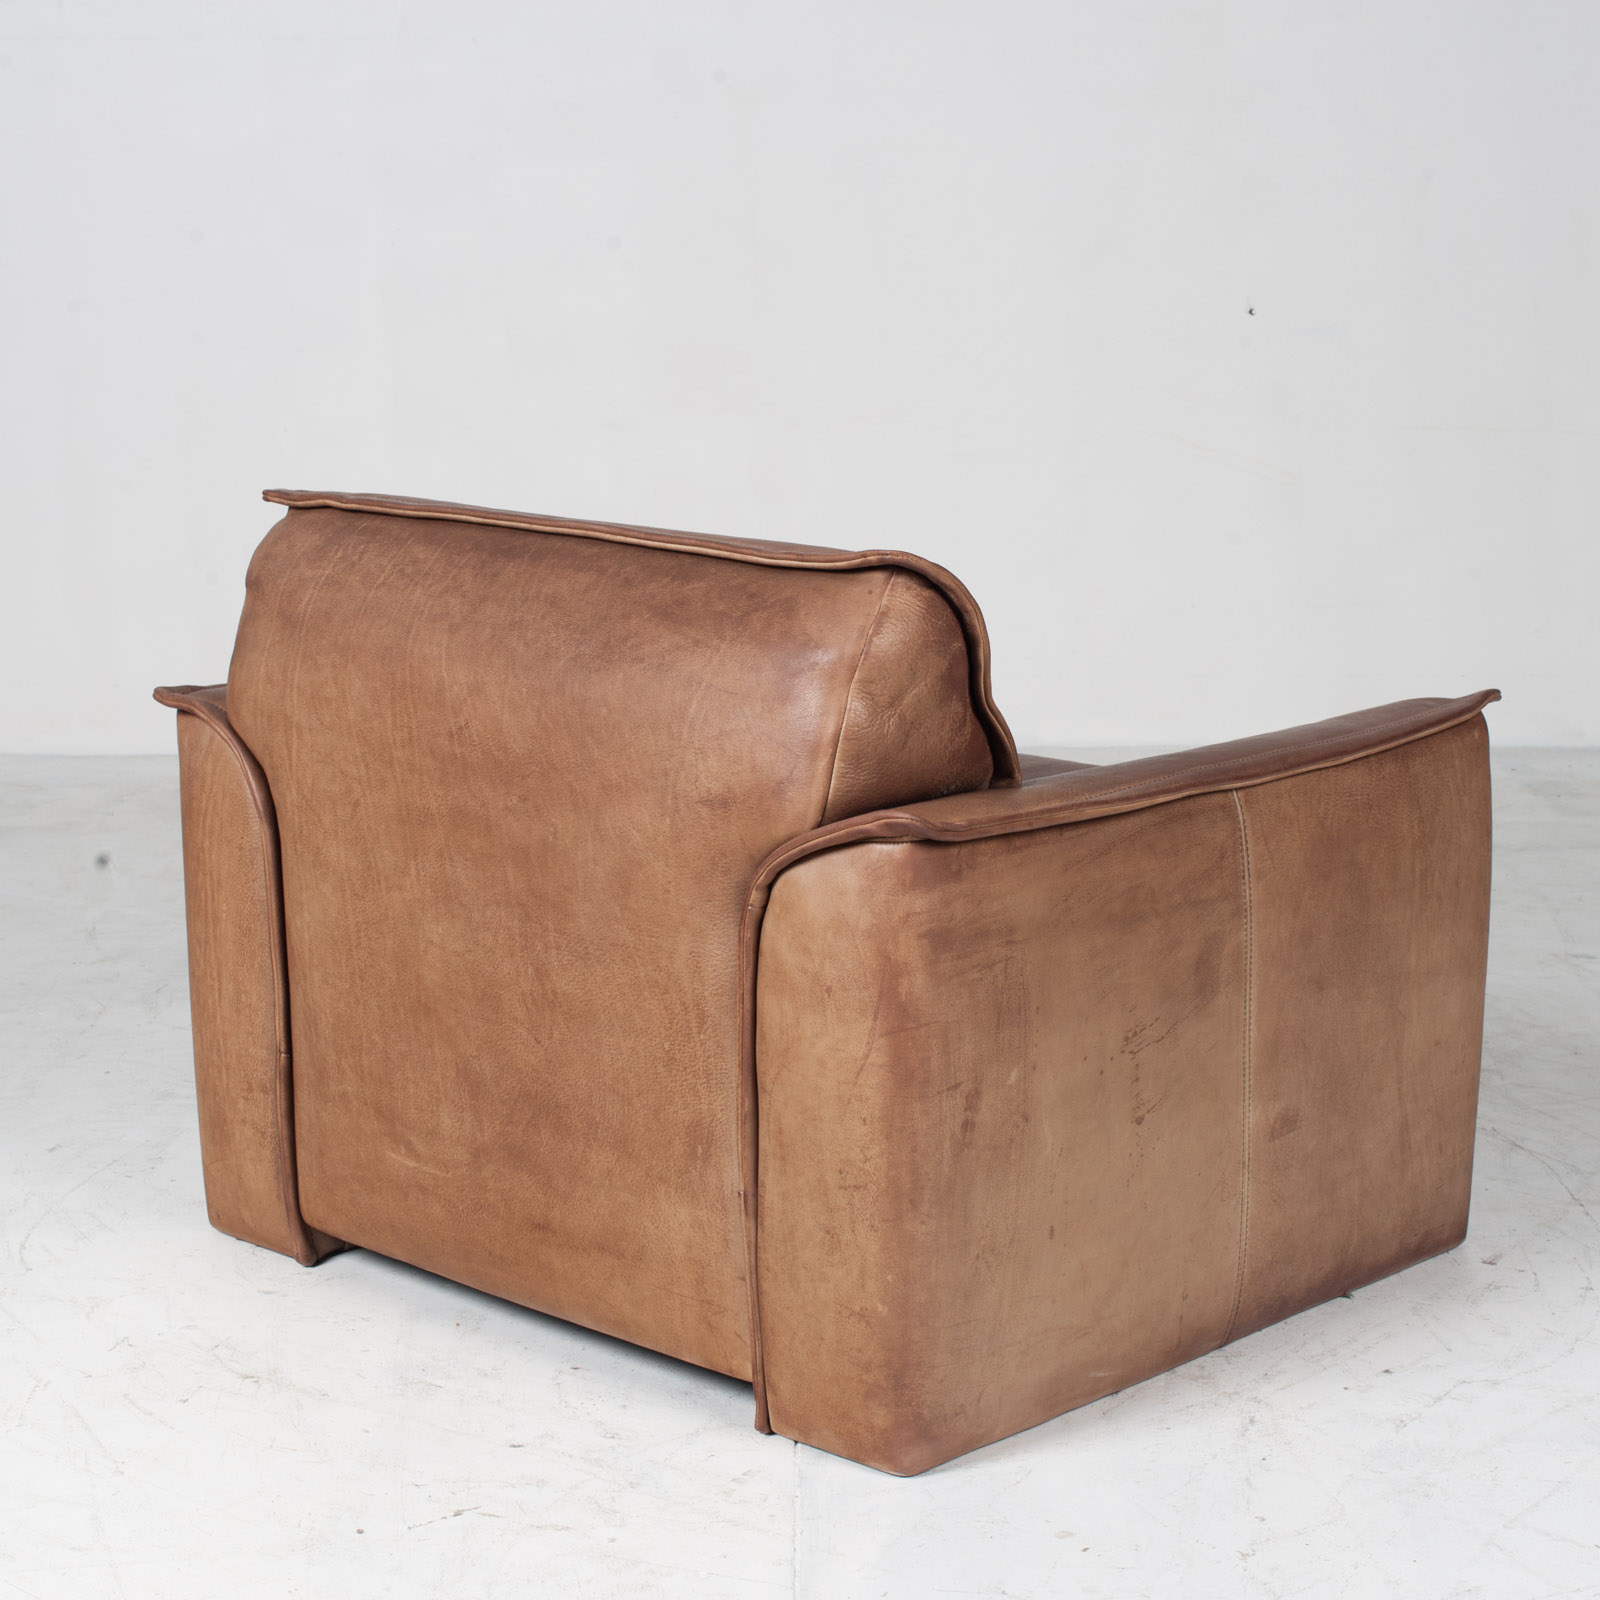 Armchairs By De Sede In Tan Neck Leather 1960s Denmark 09